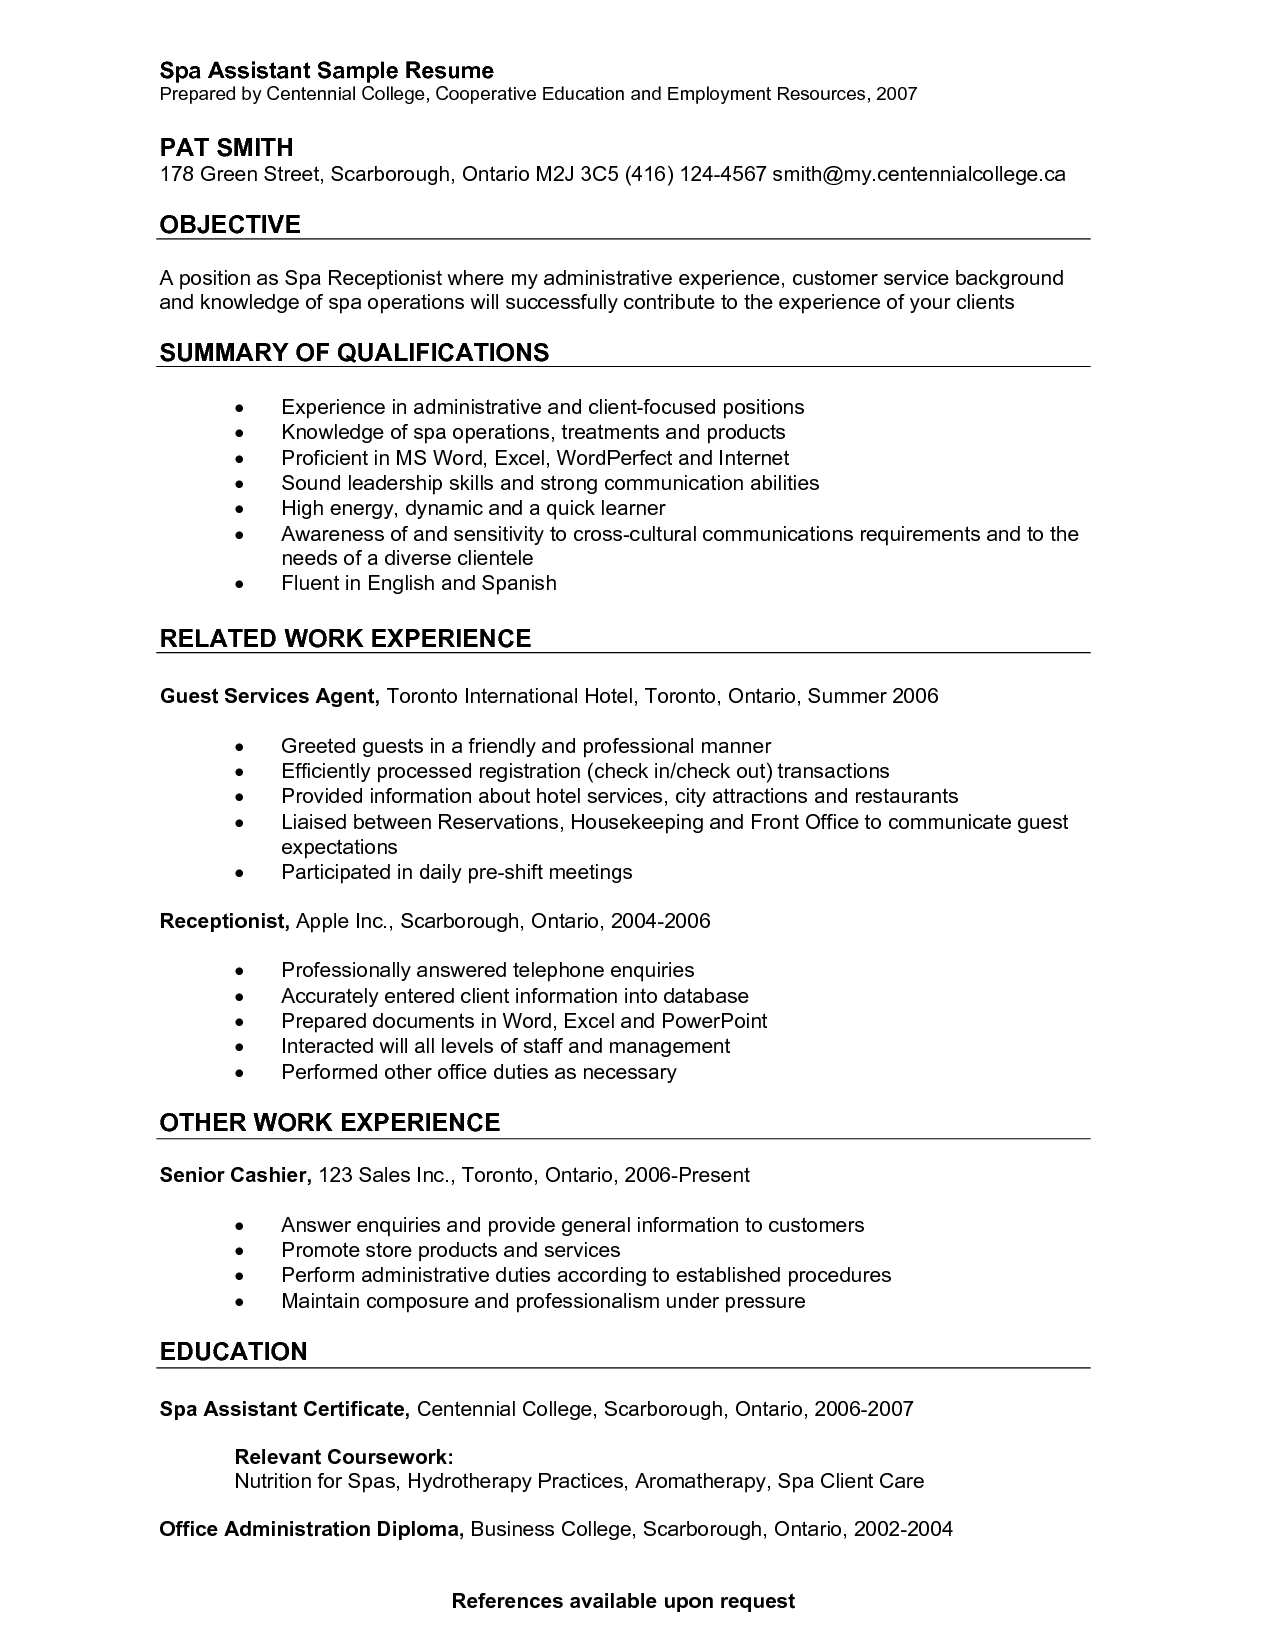 Resume for concierge personal assistant sample best spa job resume for concierge personal assistant sample best spa job description cover letter yelopaper